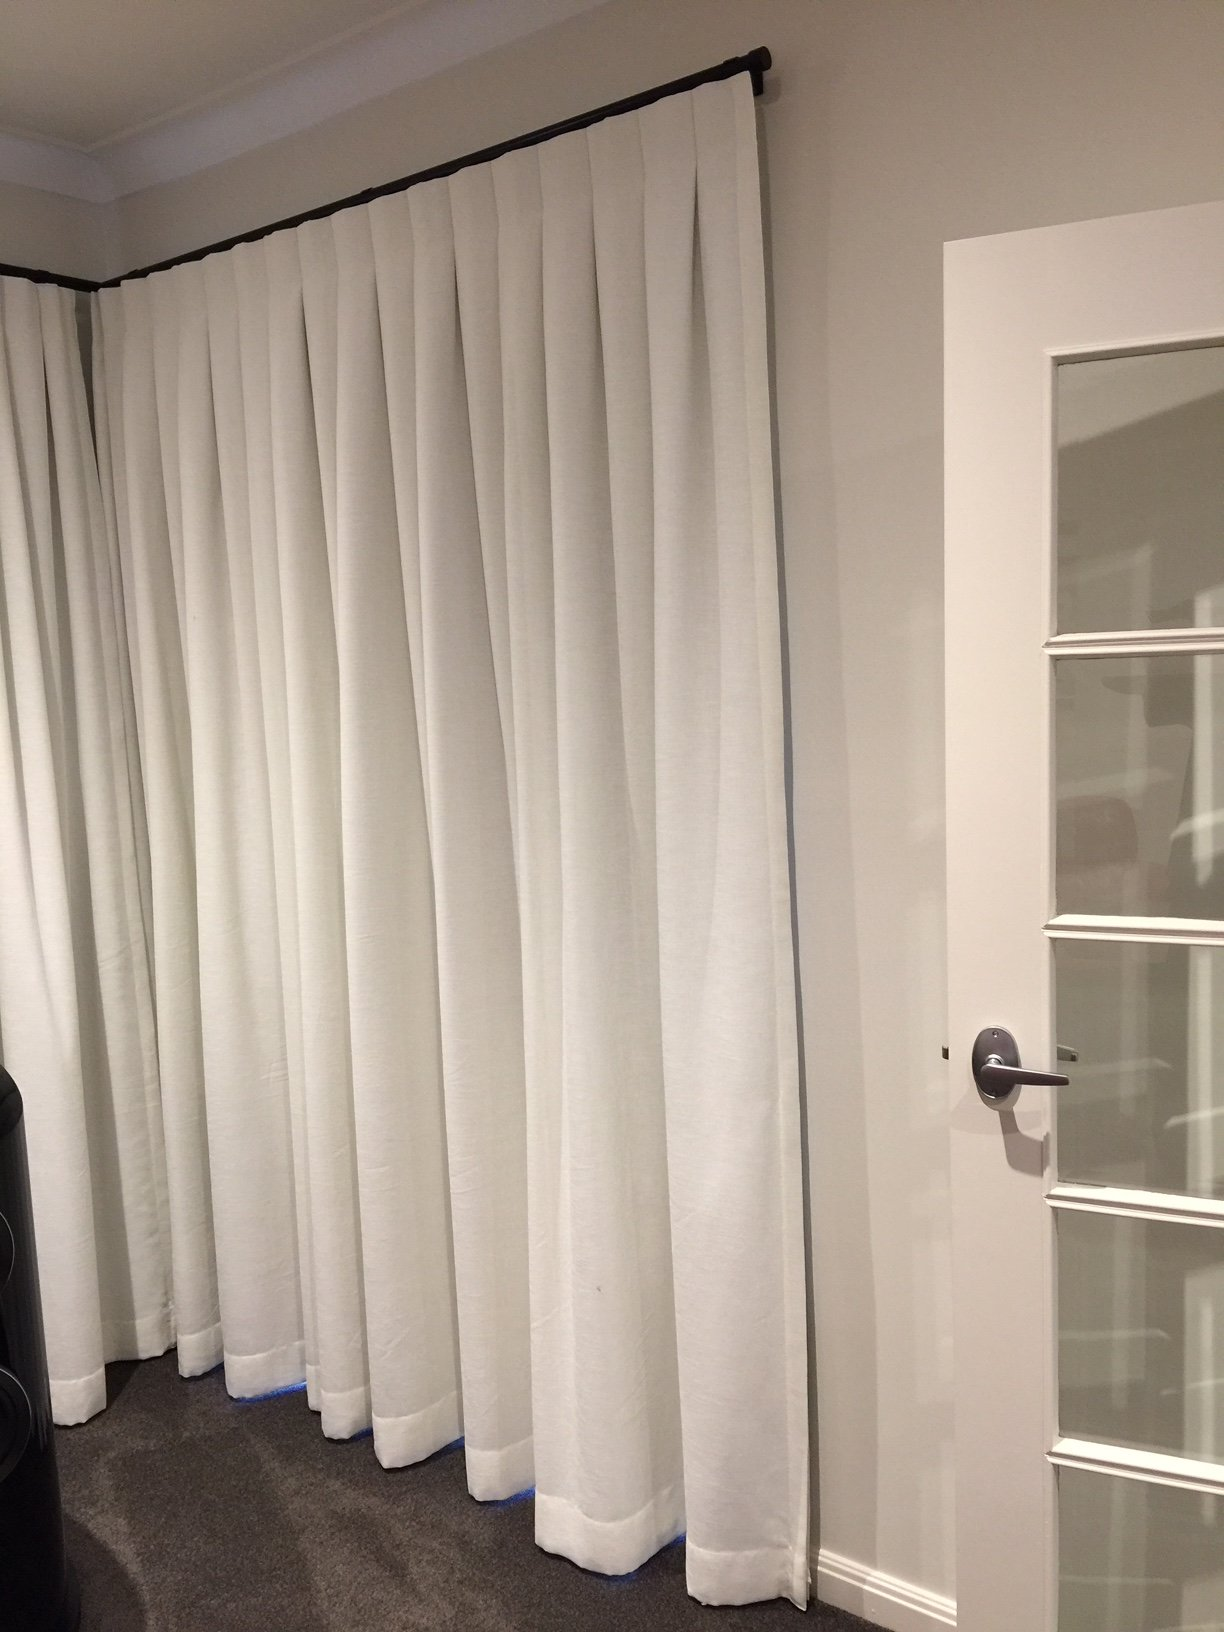 really soundproof curtains sound curtain works work does articles absorbing